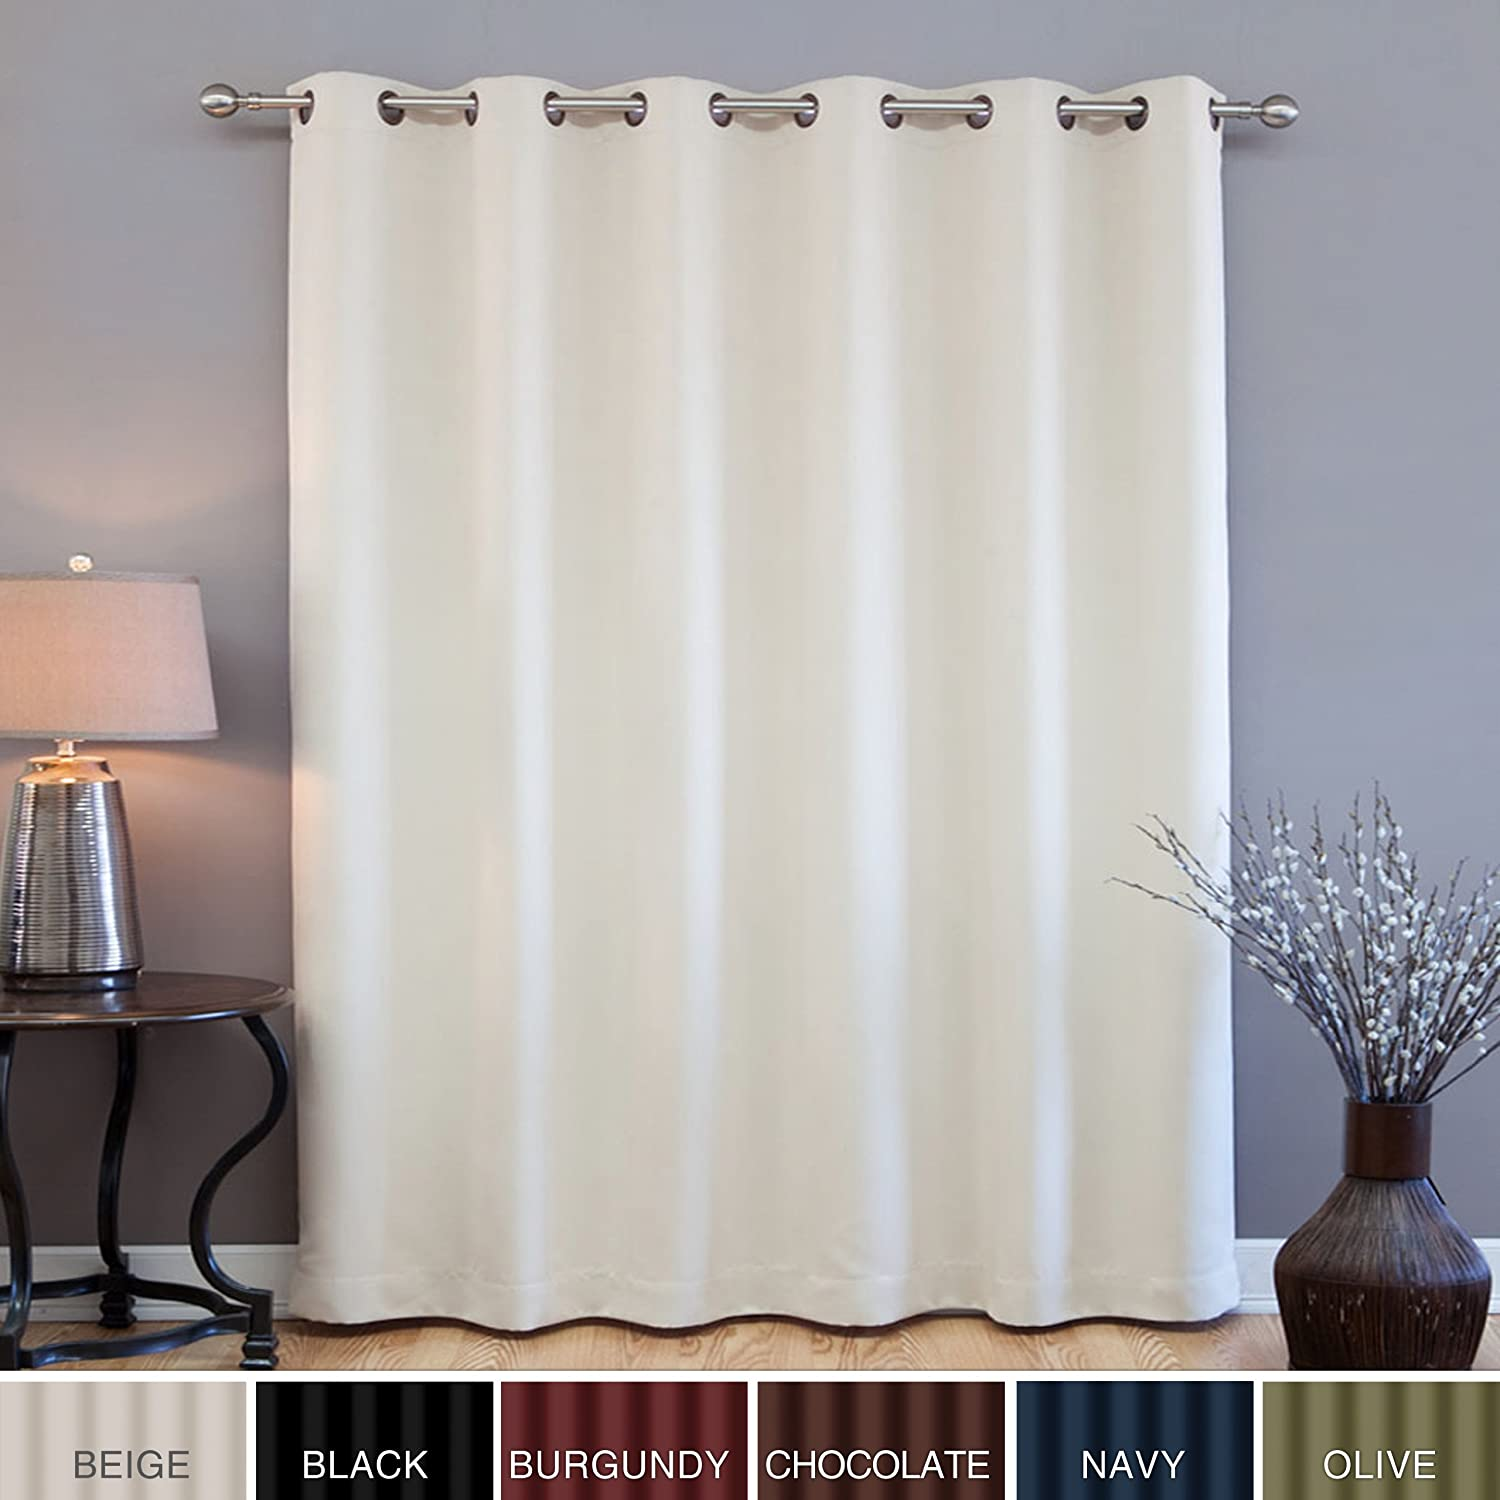 Sliding Glass Door Blackout Curtain Panels 1500 x 1500